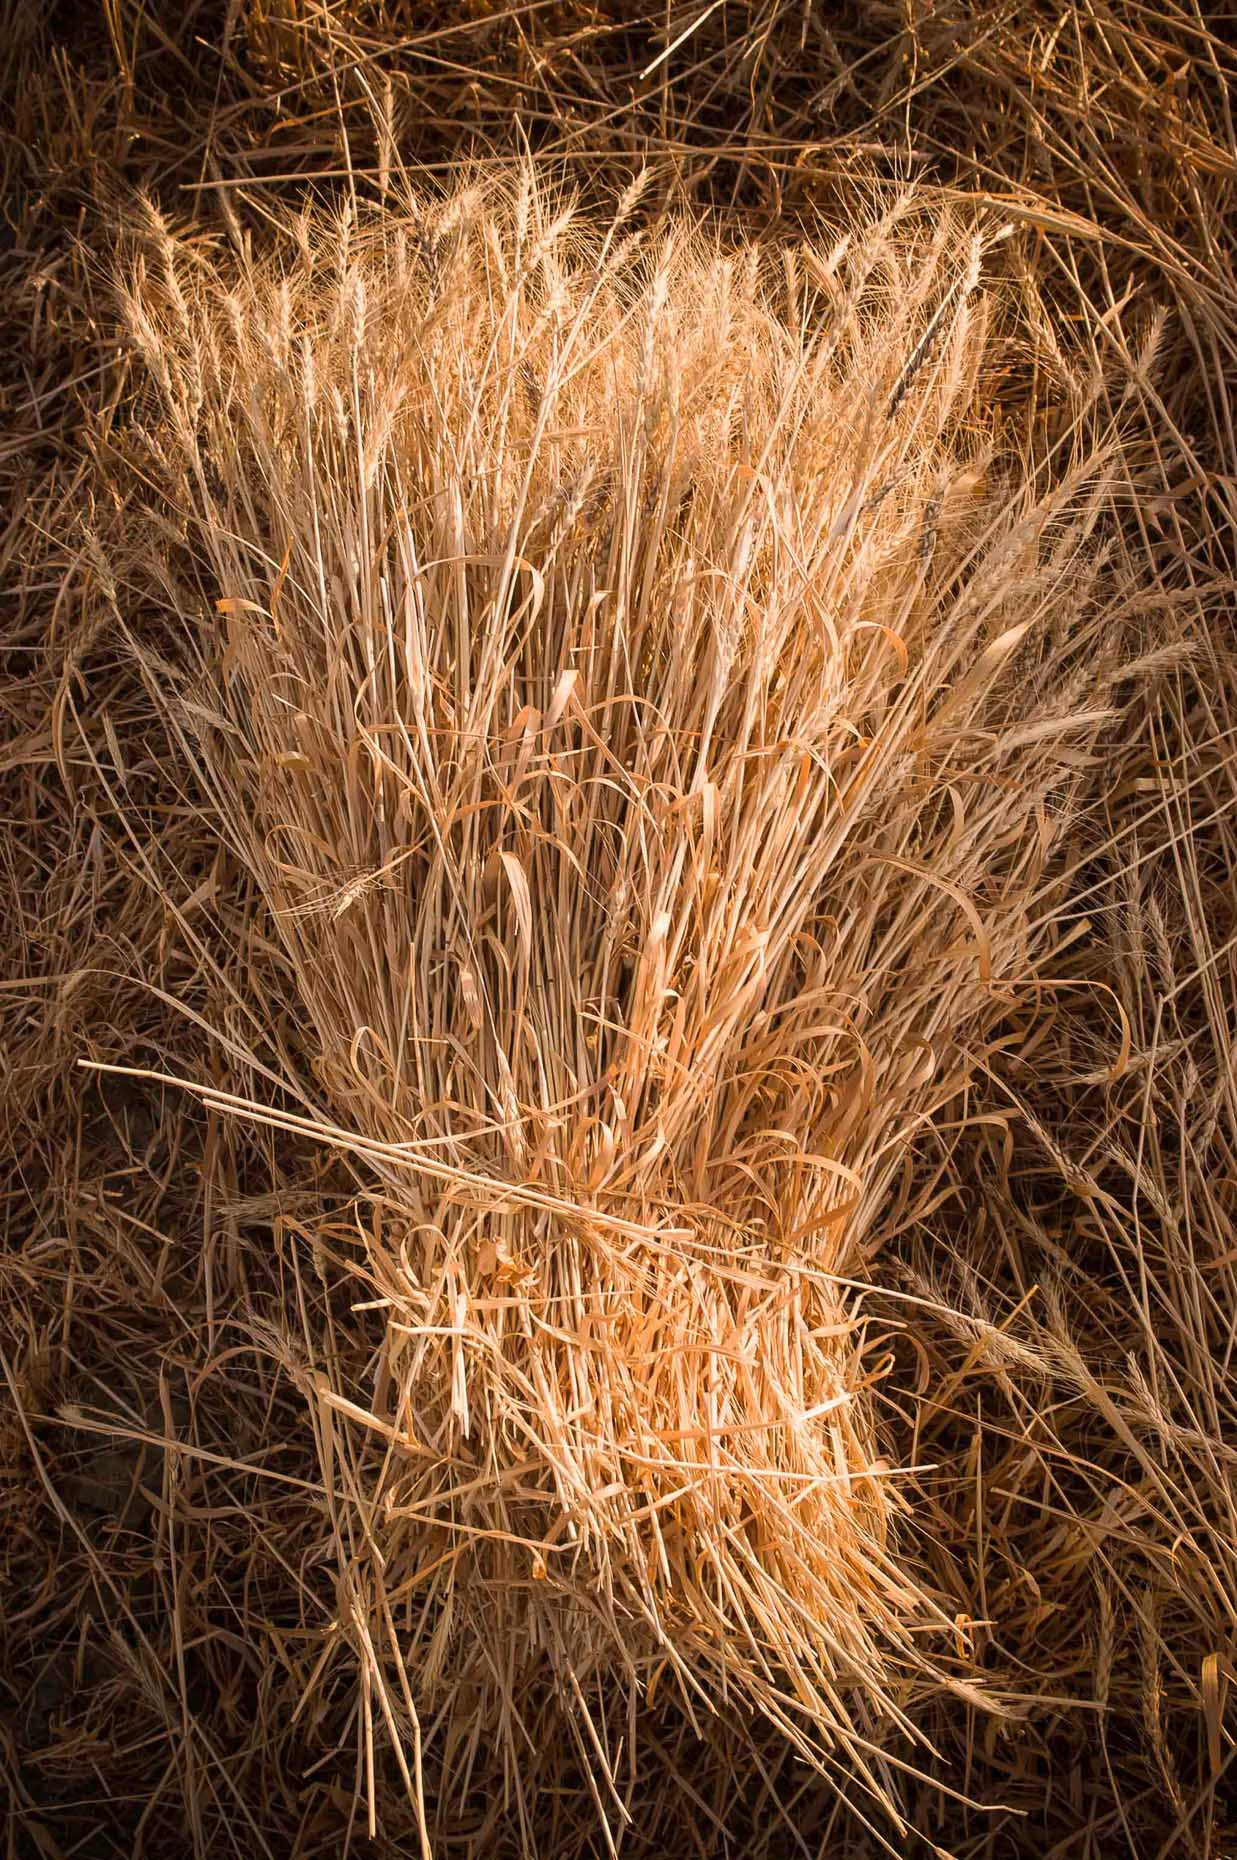 Photo of hand harvested wheat bundle in warm natural light, Van Turkey.